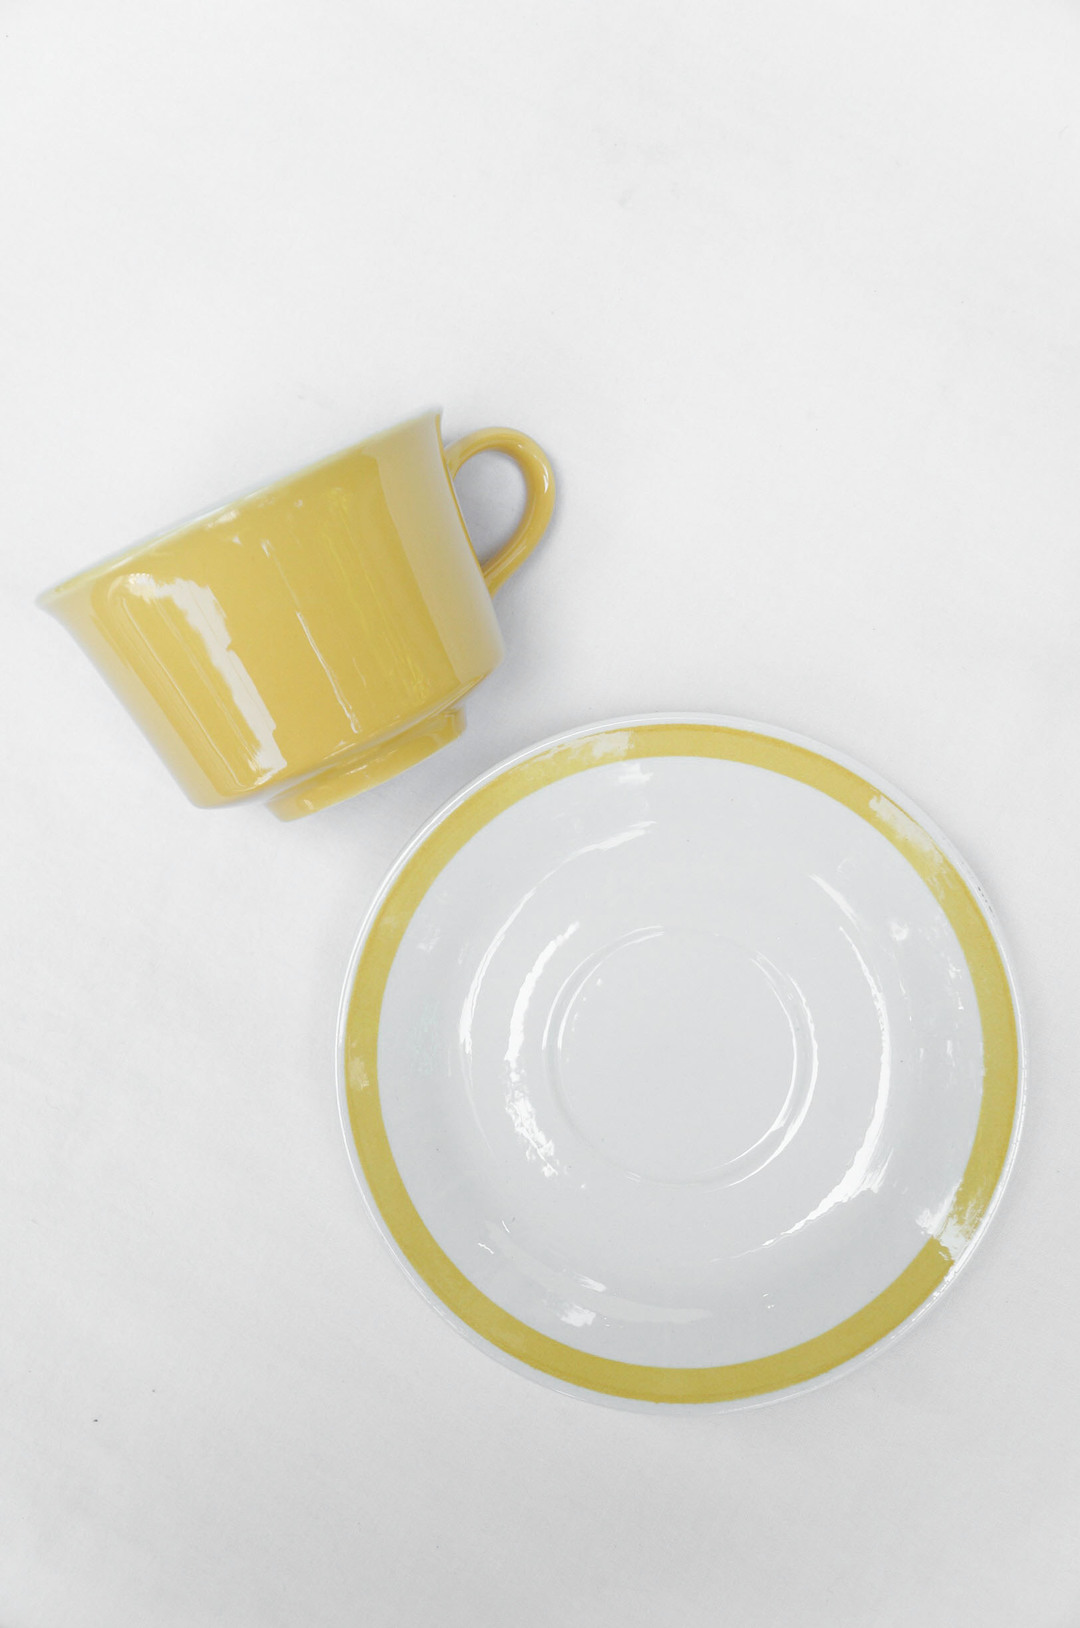 US Vintage Royal China Damsel Cup and Saucer/アメリカ ヴィンテージ ロイヤルチャイナ ダムセル カップ&ソーサー 食器 レトロ 3